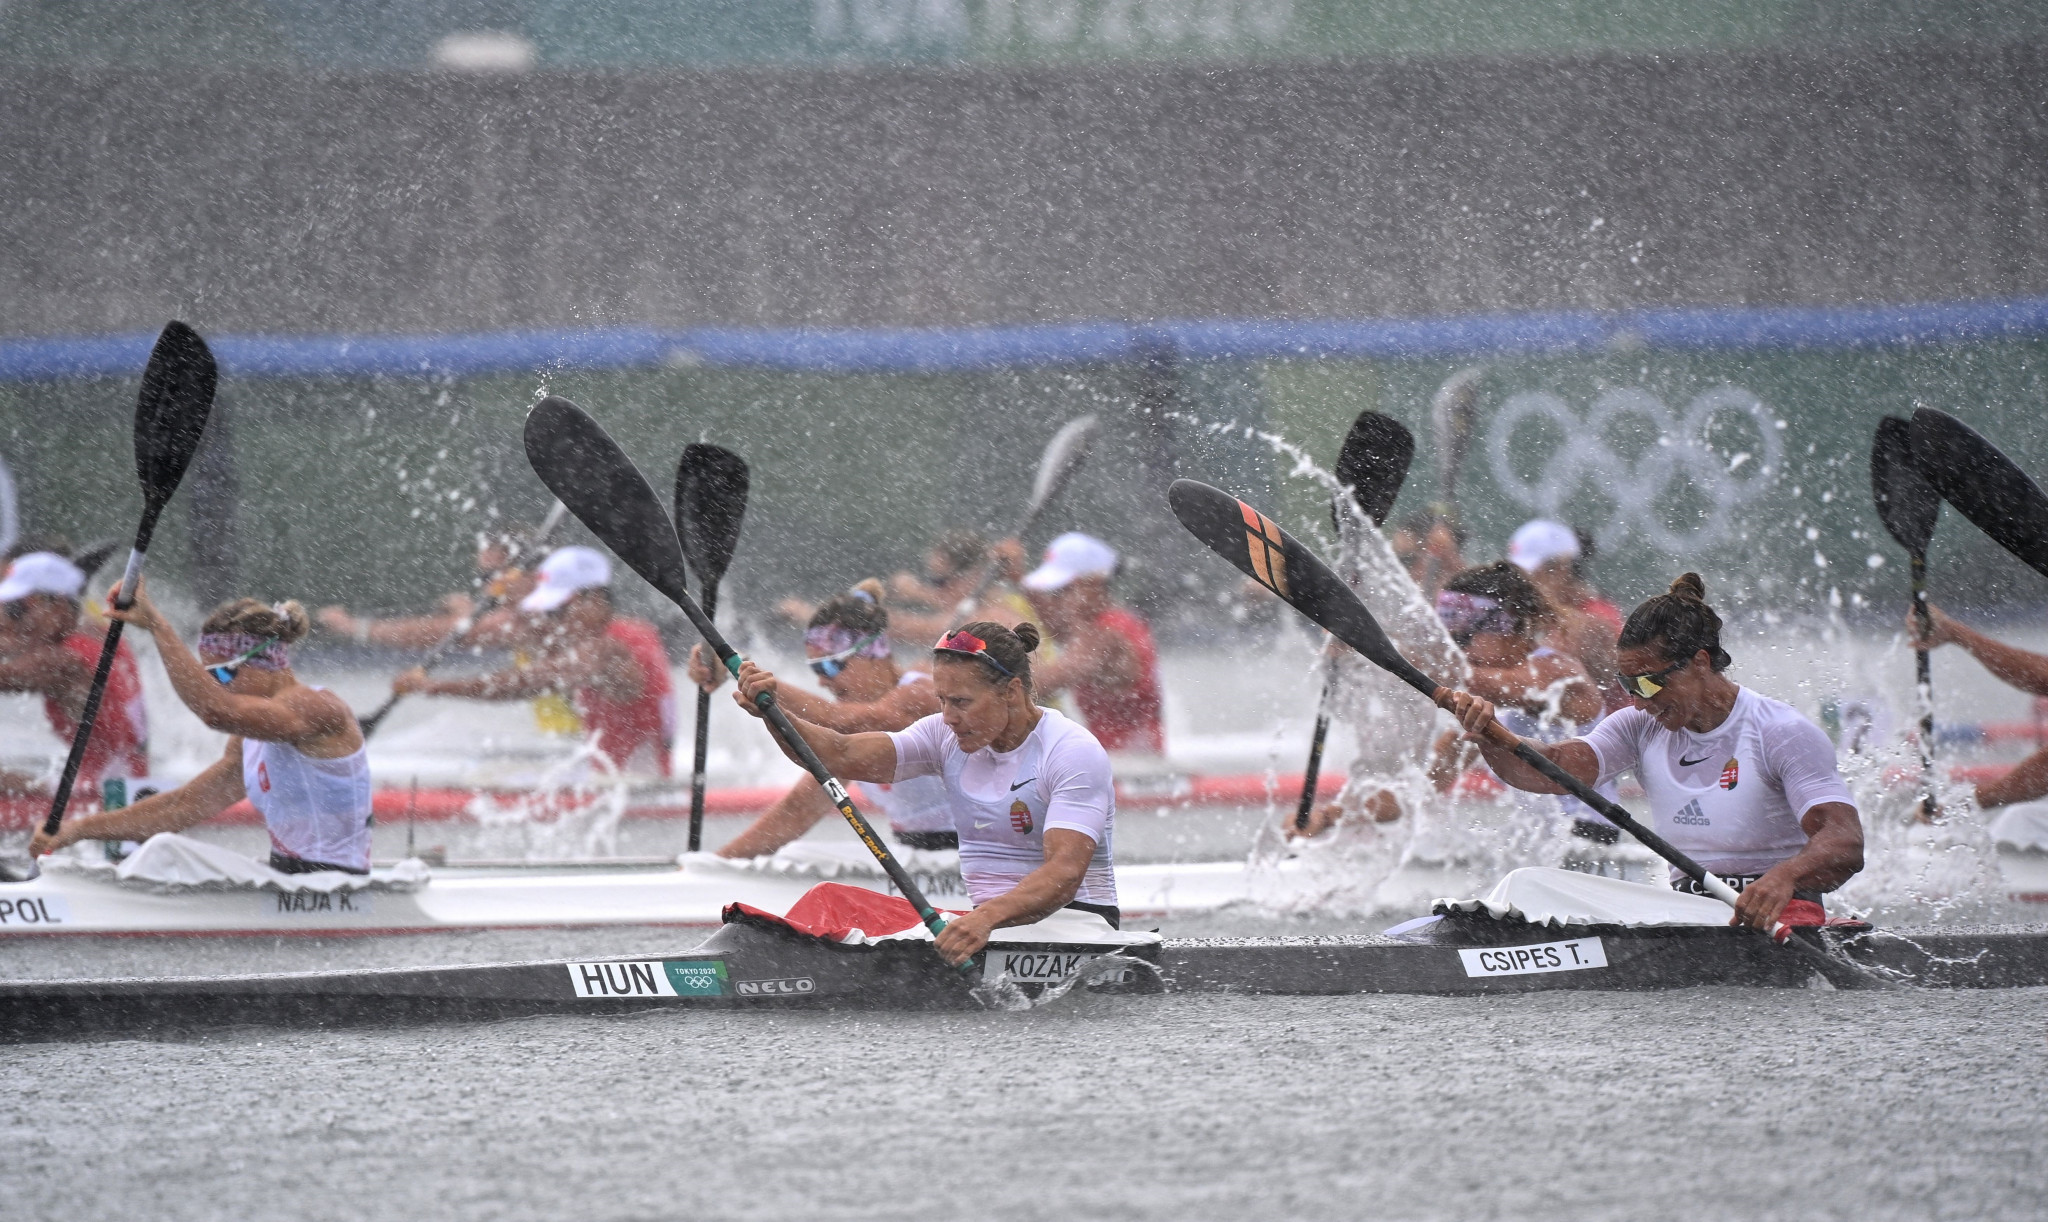 Danuta Kozák leads Hungary to victory in the women's K4 500m final ©Getty Images